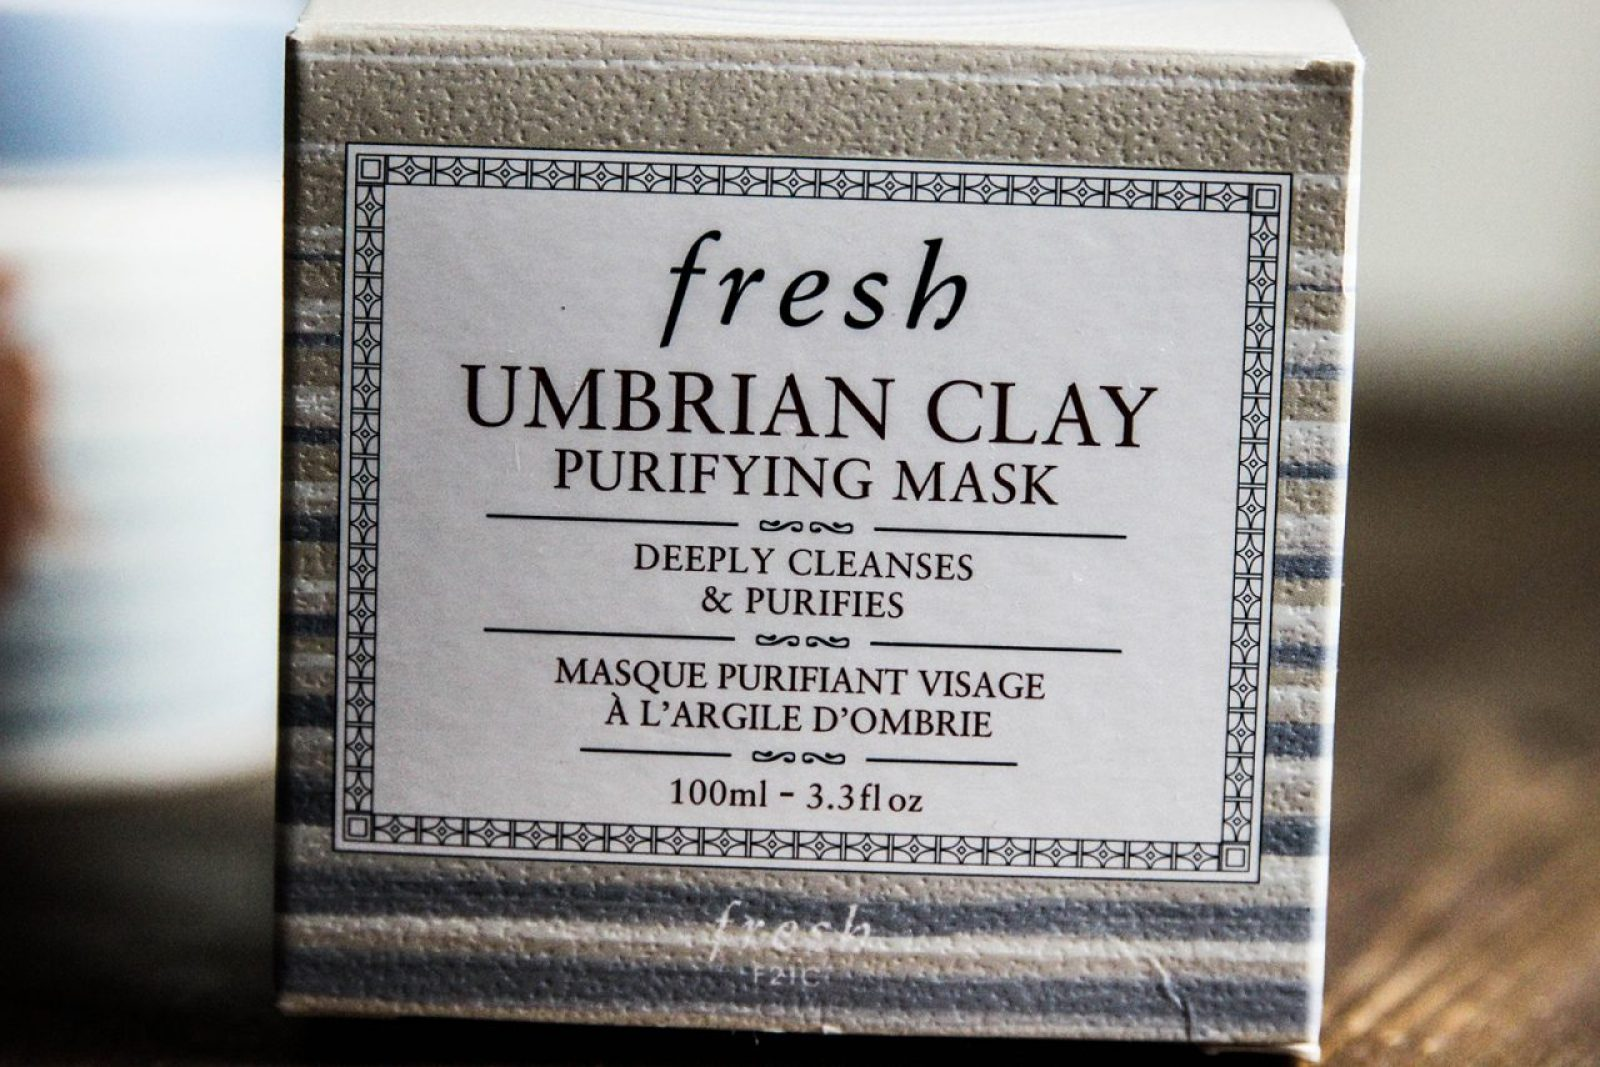 FRESH_Umbrian Clay_Purifying Mask_purifiant24